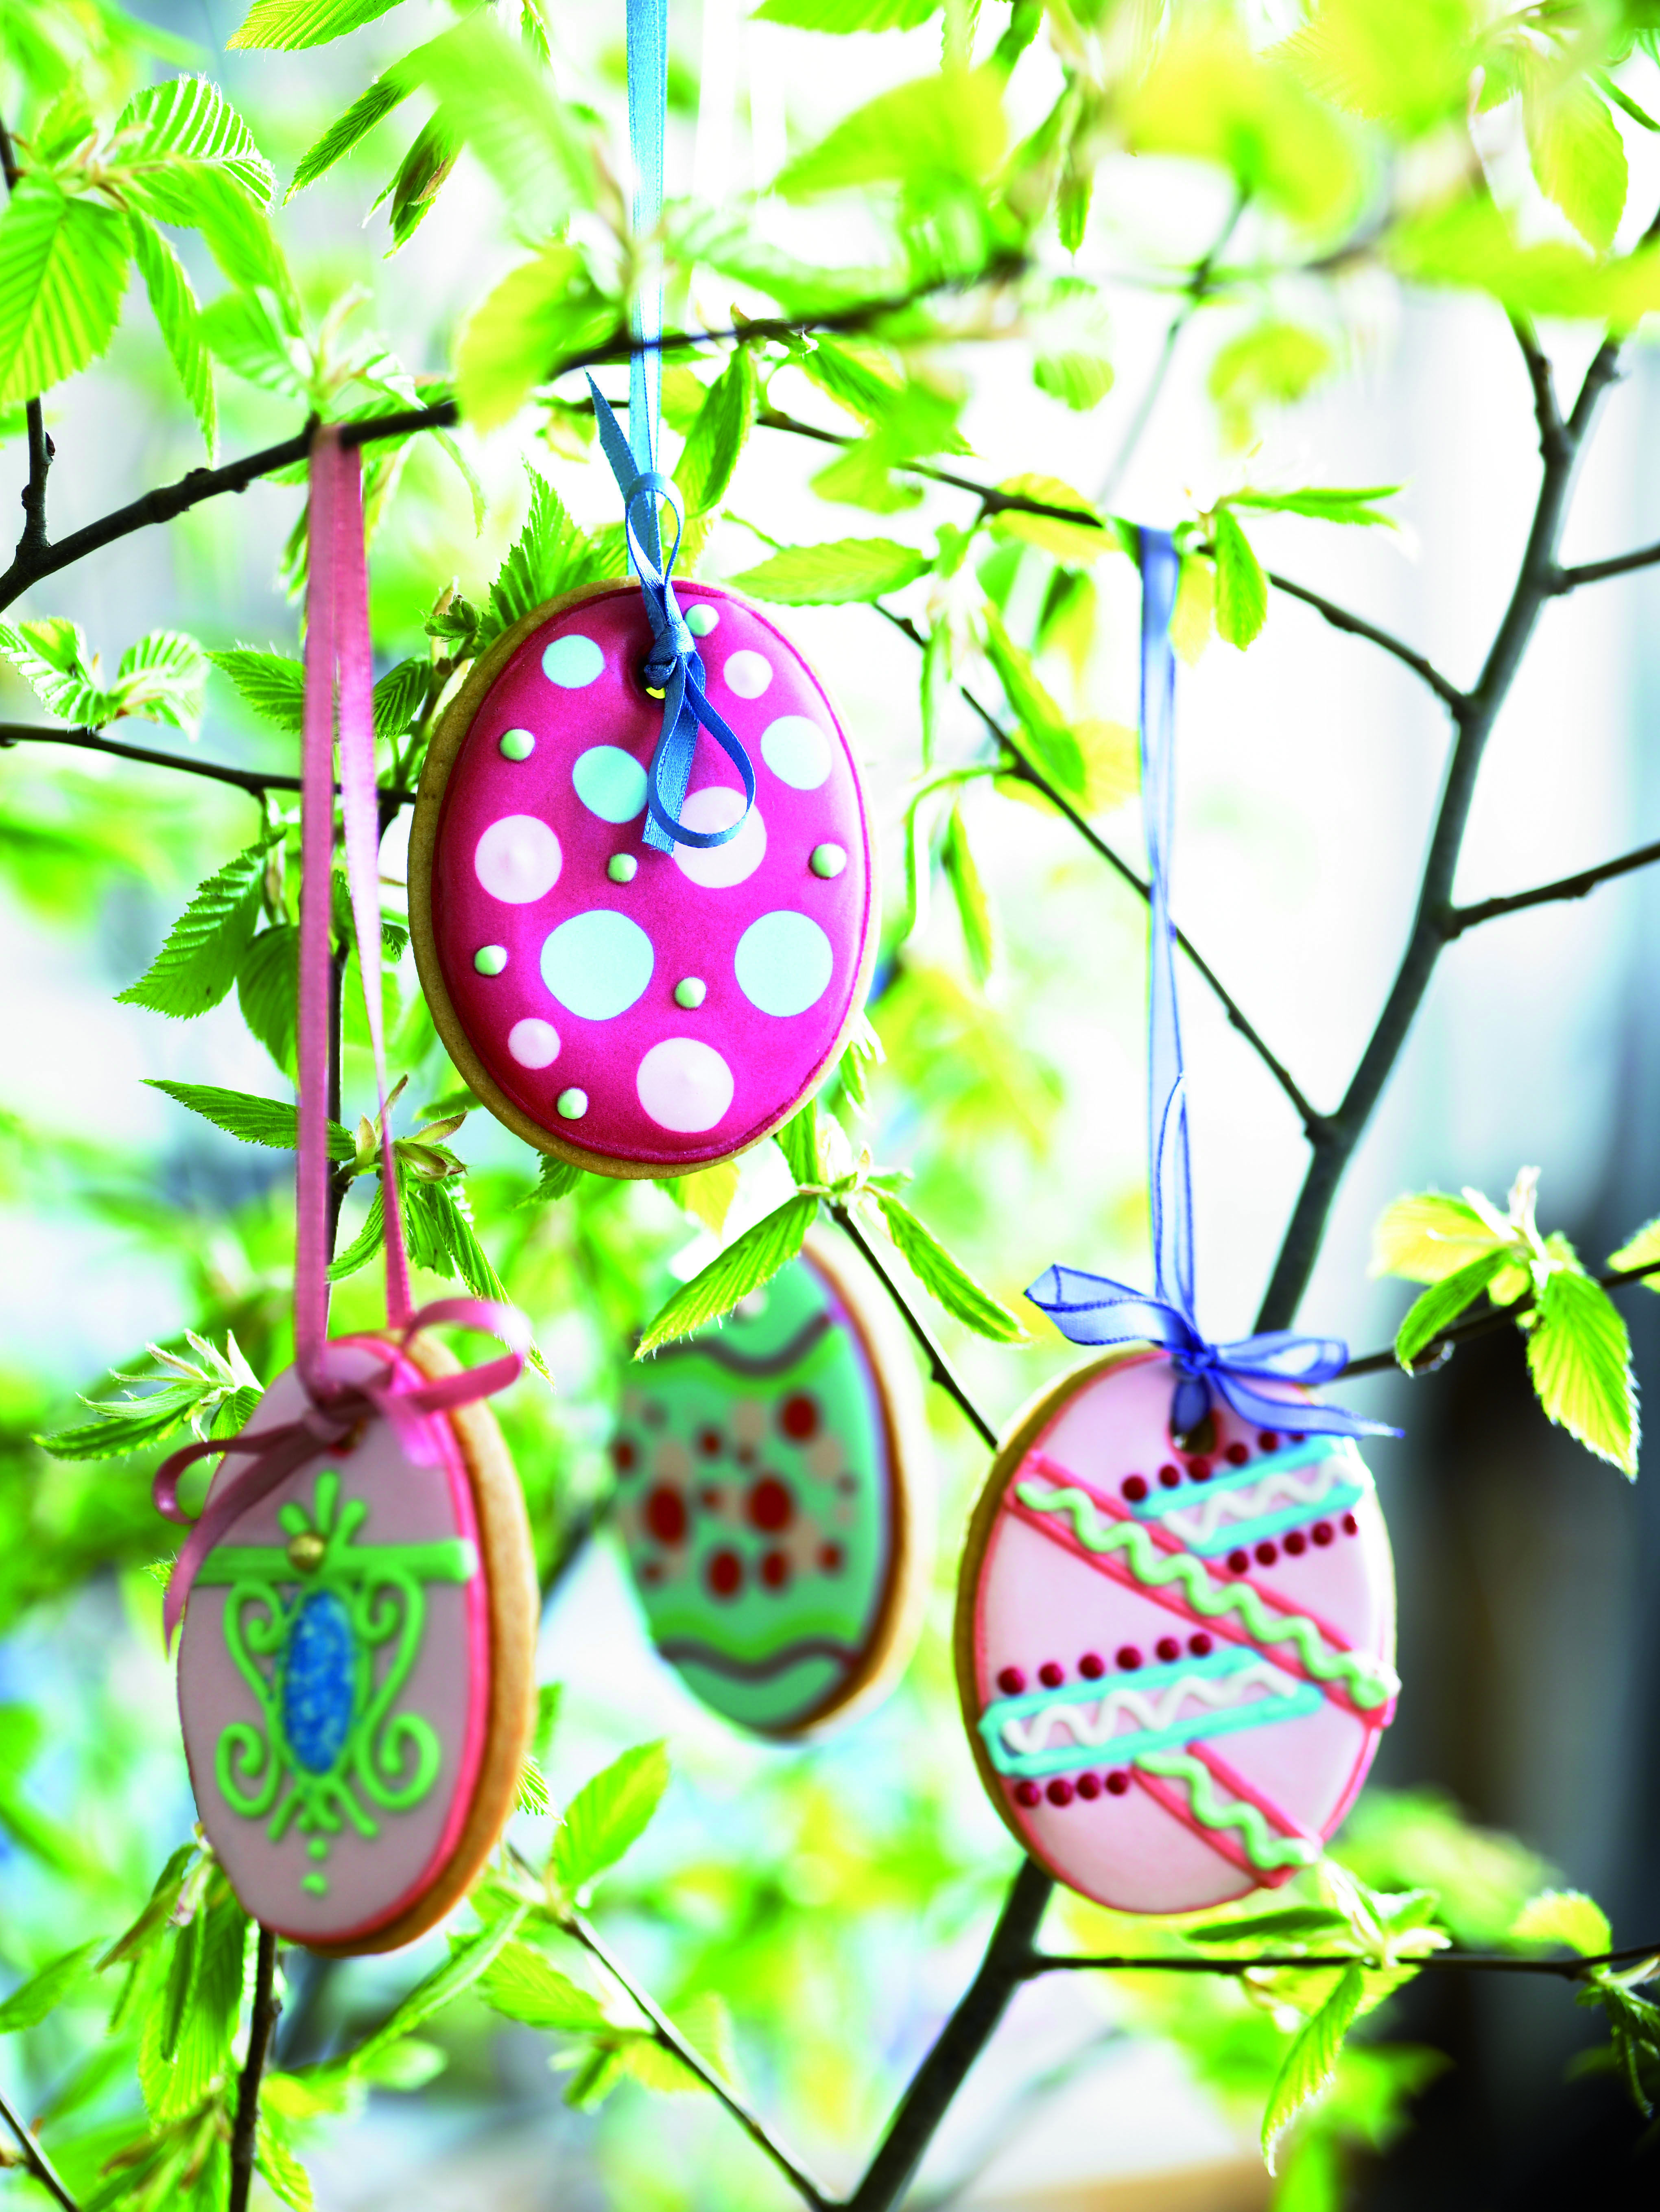 Want to make some #easter #biscuits for your #eastertree? Try our foolproof #biscuitrecipe....